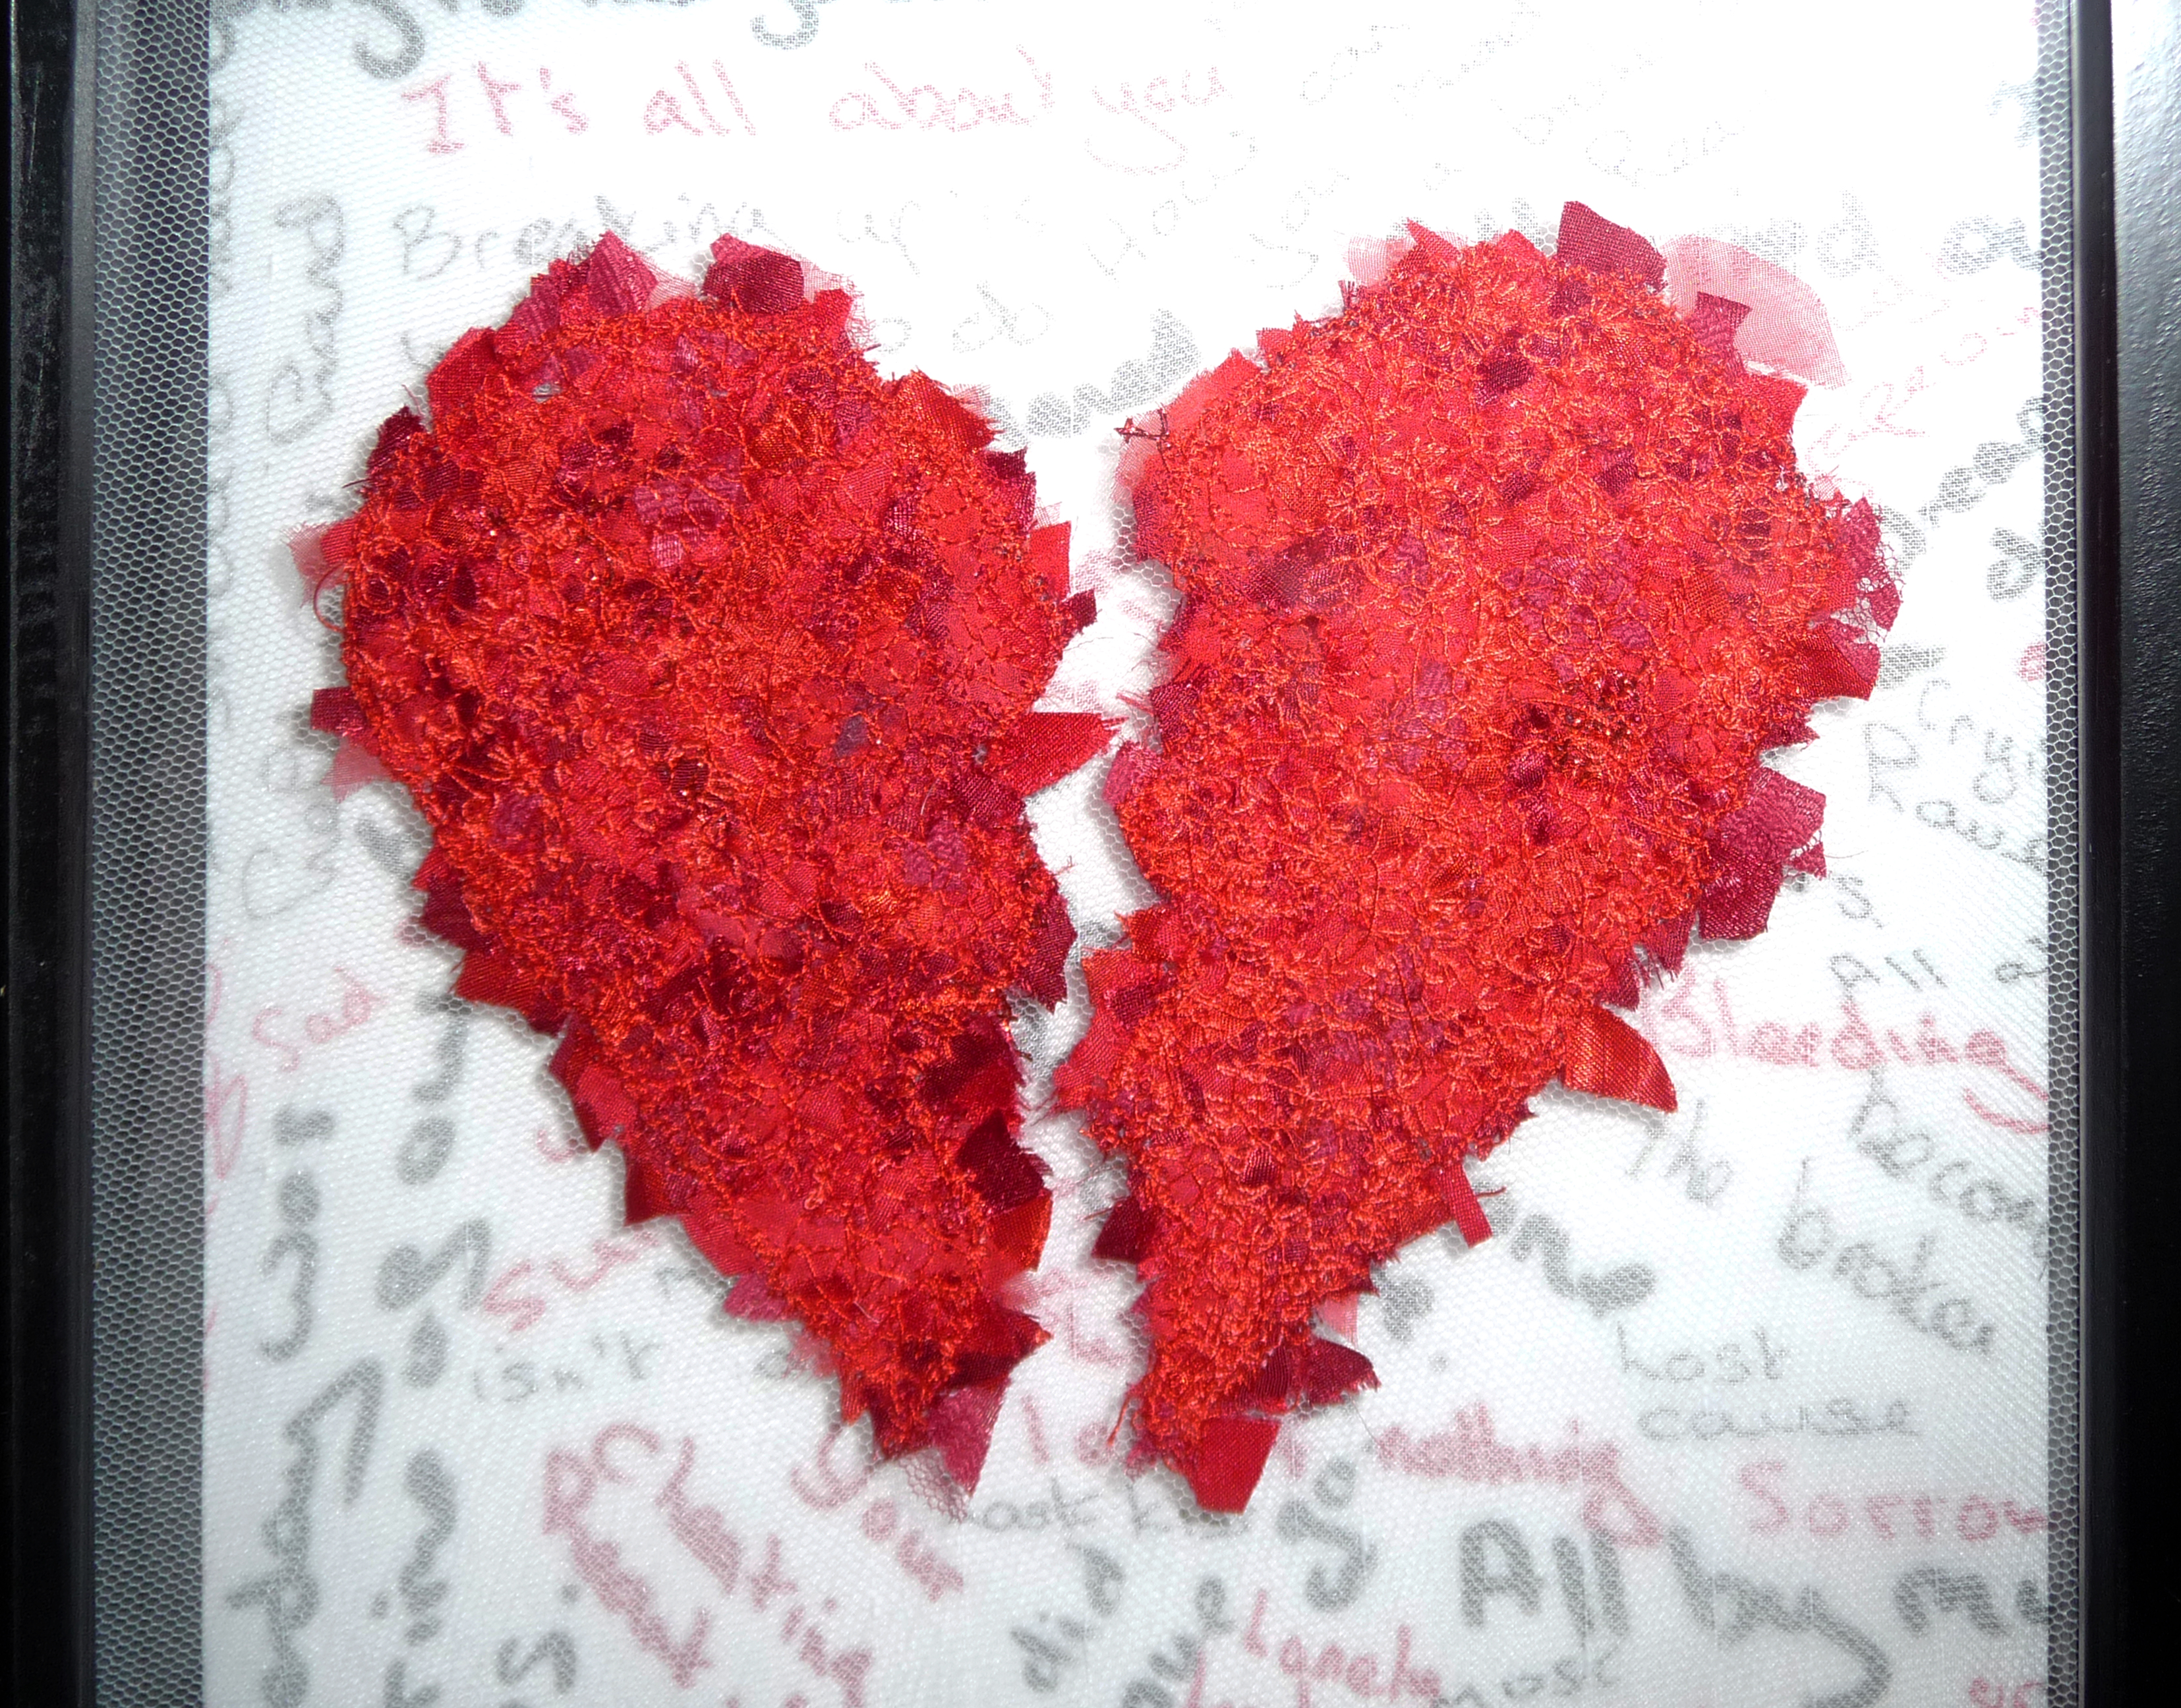 BROKEN HEART by Marilyn Smith, machine embroidery